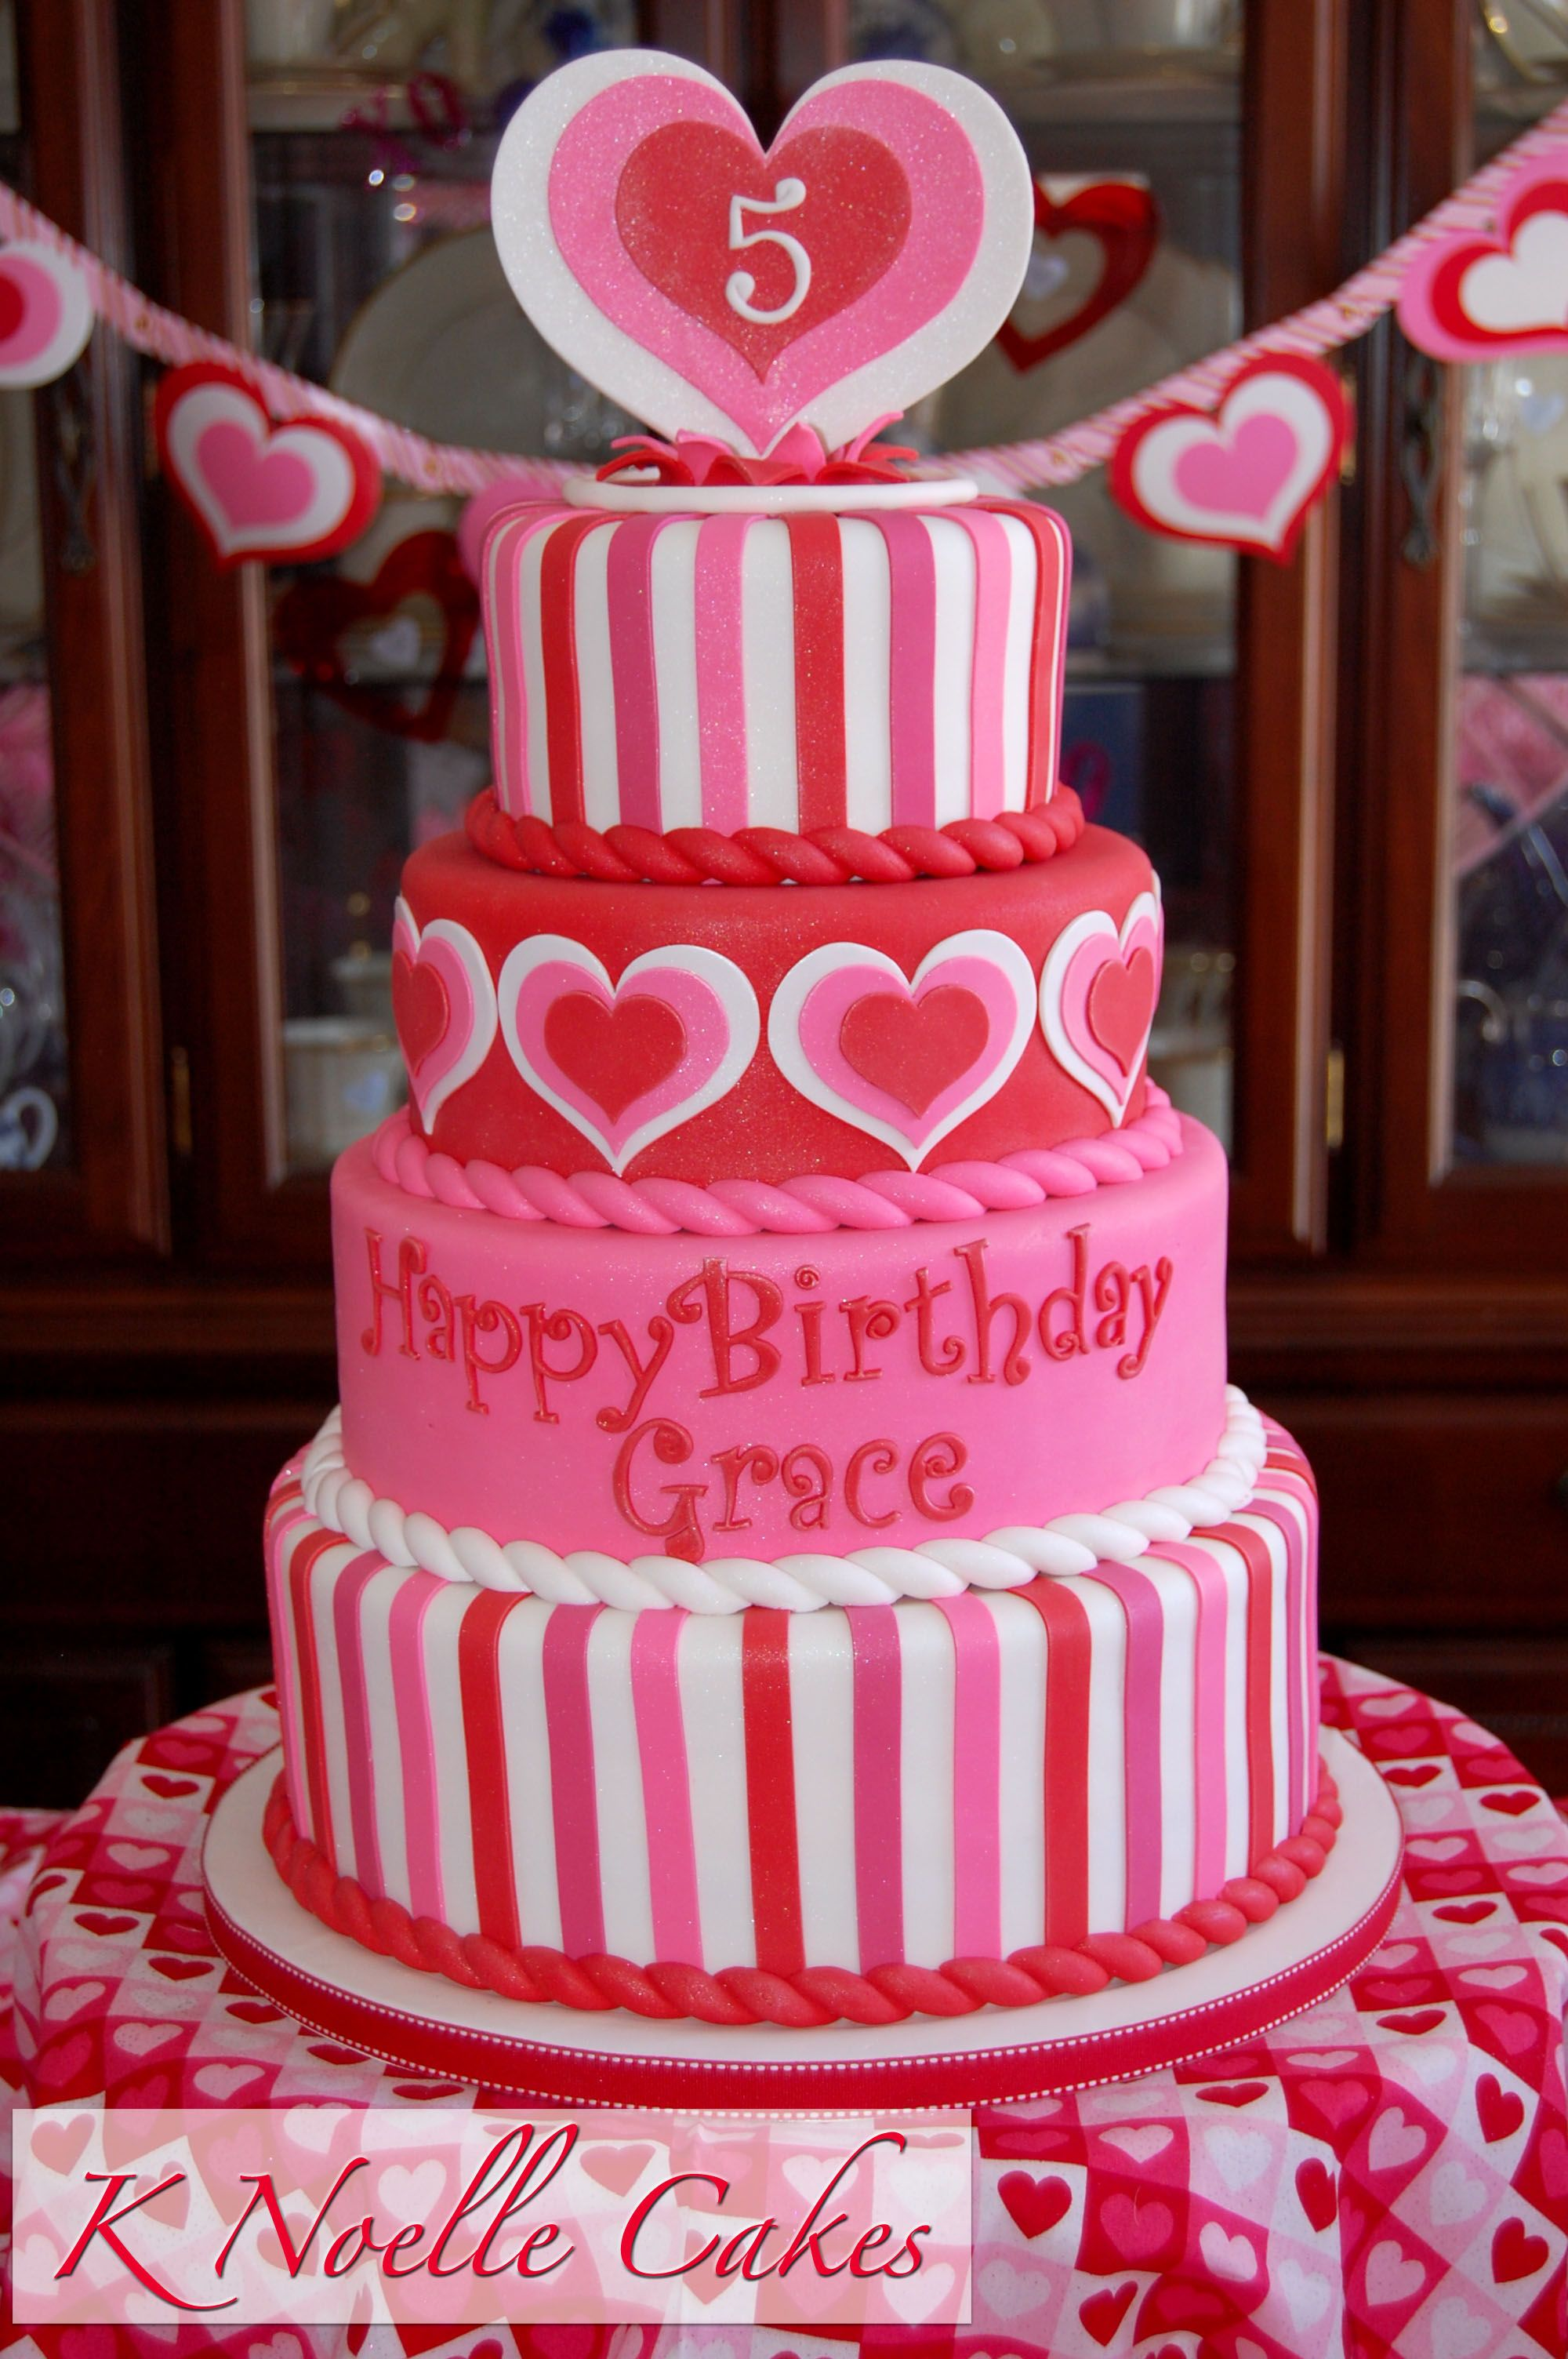 Magnificent Valentines Birthday Cake By K Noelle Cakes With Images Funny Birthday Cards Online Elaedamsfinfo